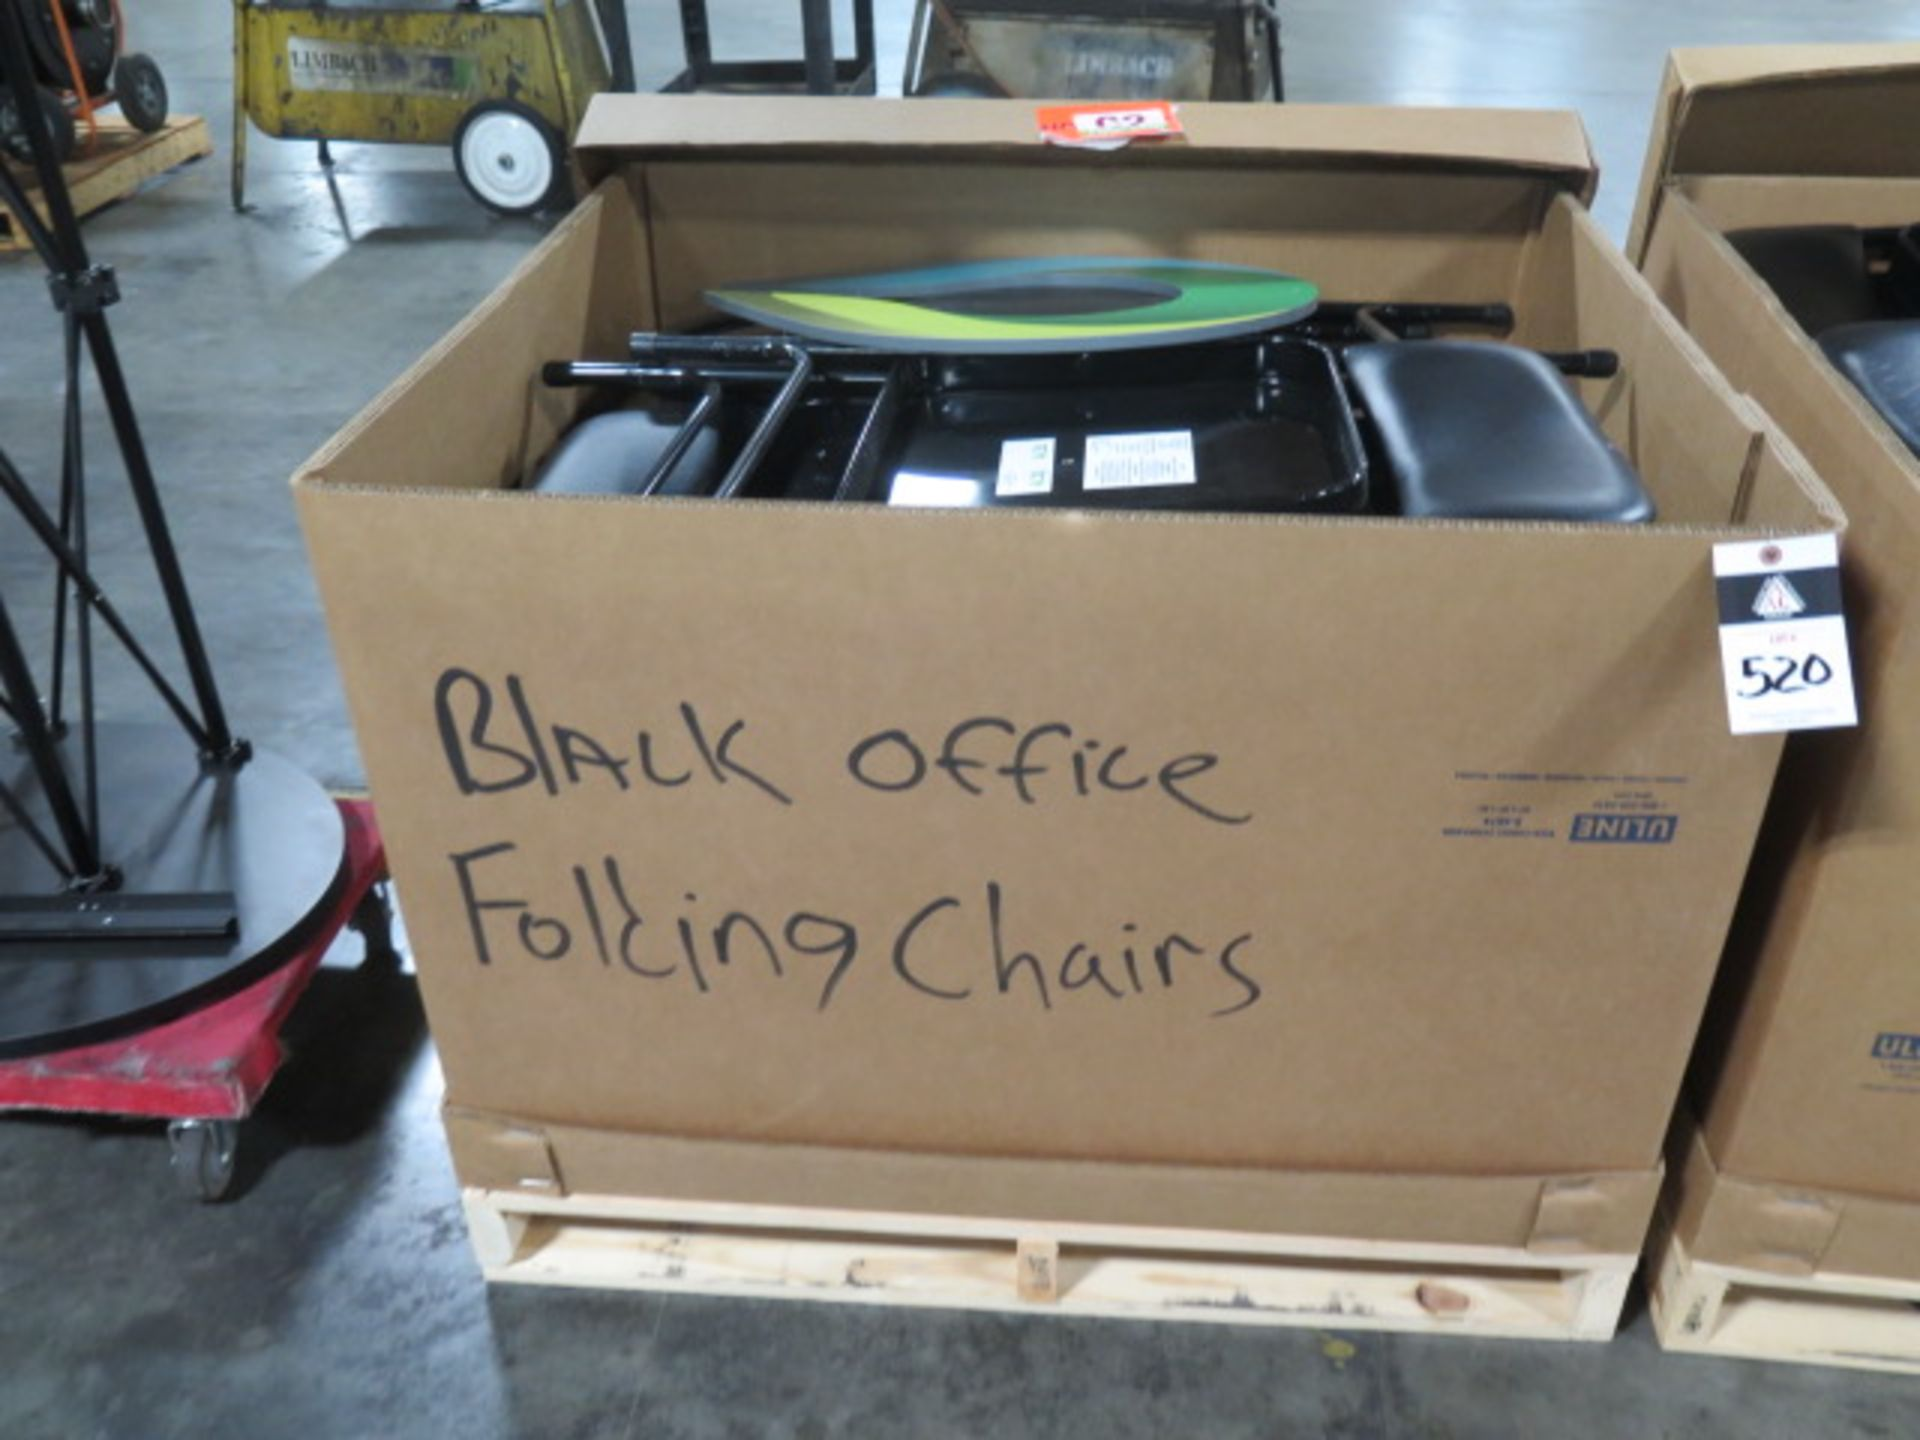 Office Folding Chairs - Black - Padded (2 Crates) (SOLD AS-IS - NO WARRANTY) - Image 3 of 9